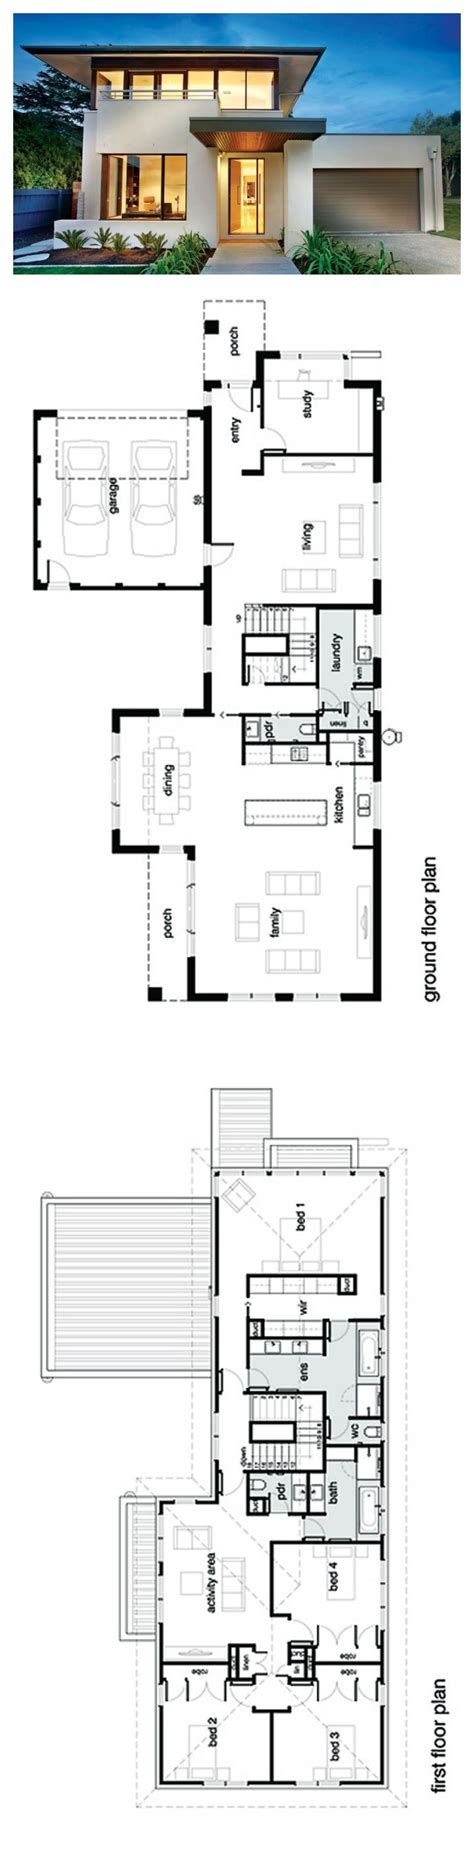 best modern house plans ideas on ground floor